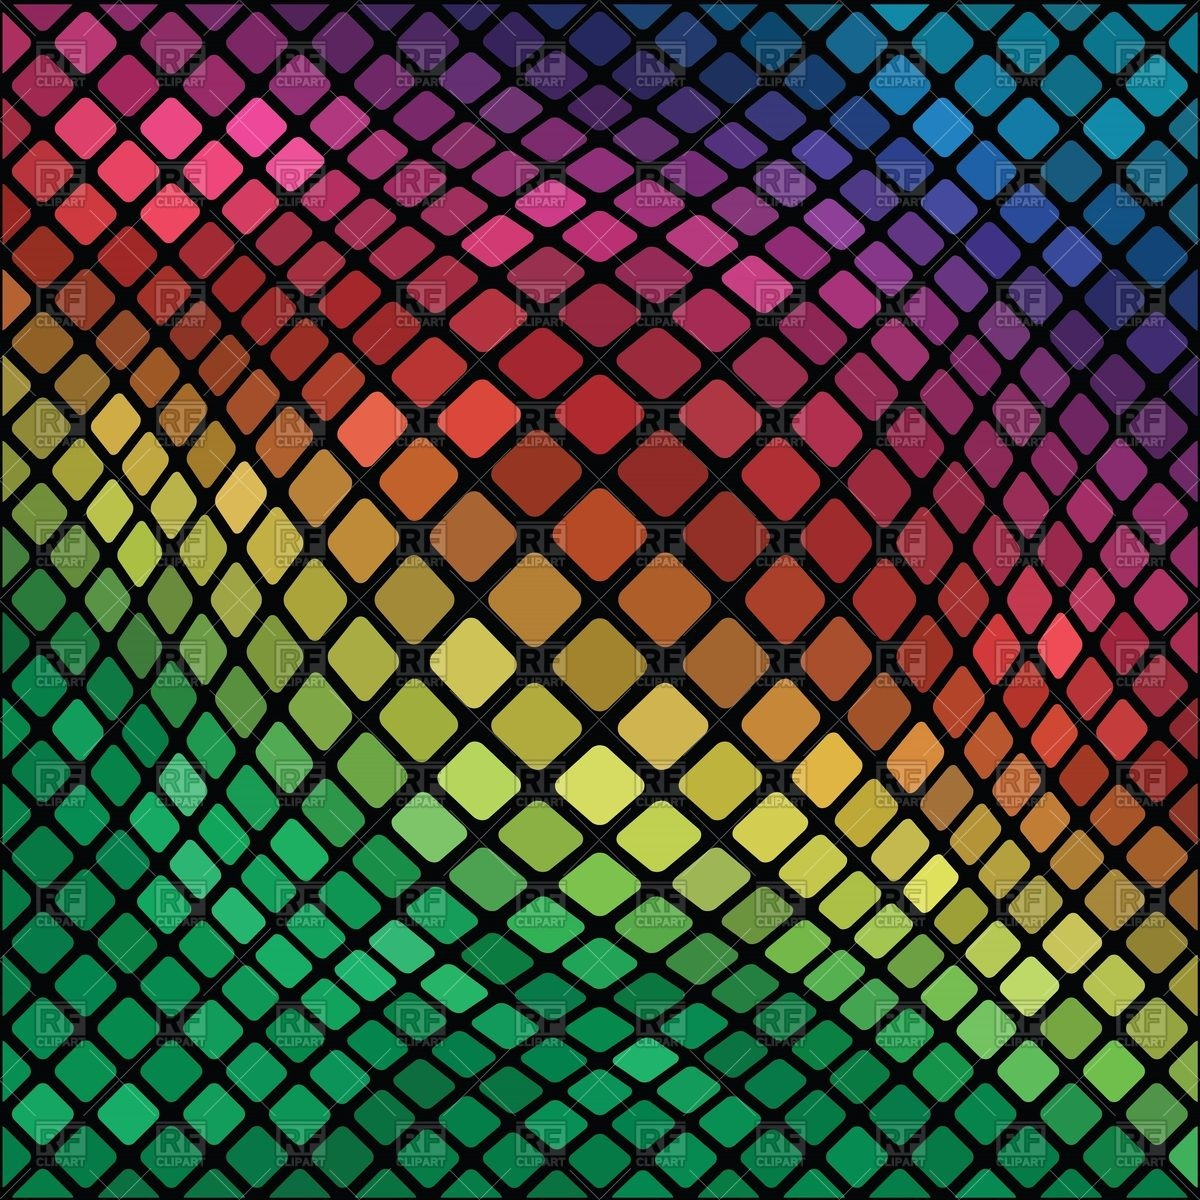 Mosaic distorted background Vector Image #39317.